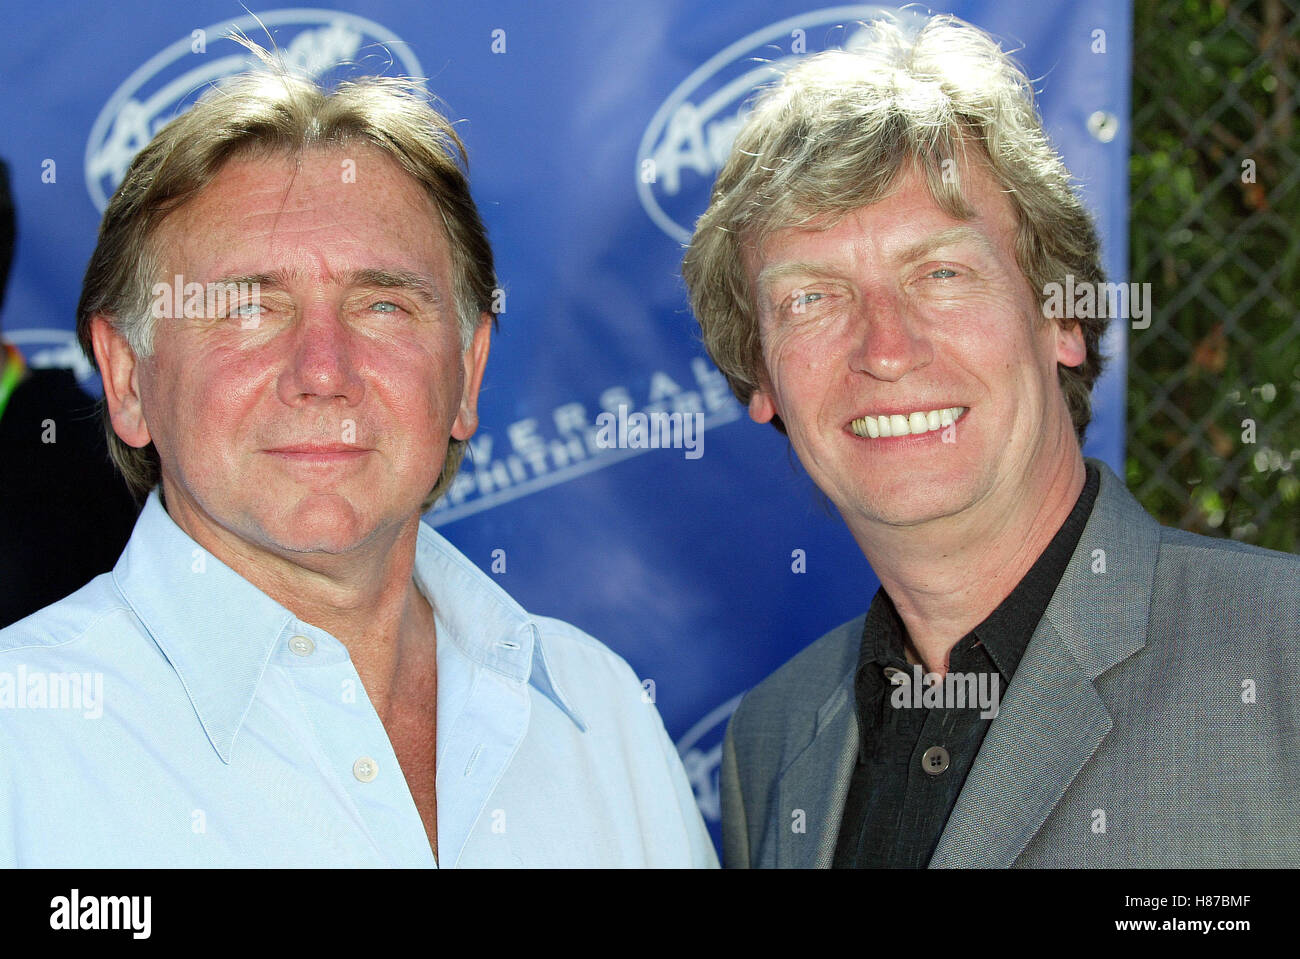 UNKNOWN AMERICAN IDOL 2 FINALS UNIVERSAL AMPHITHEATRE LOS ANGELES USA 21 May 2003 - Stock Image